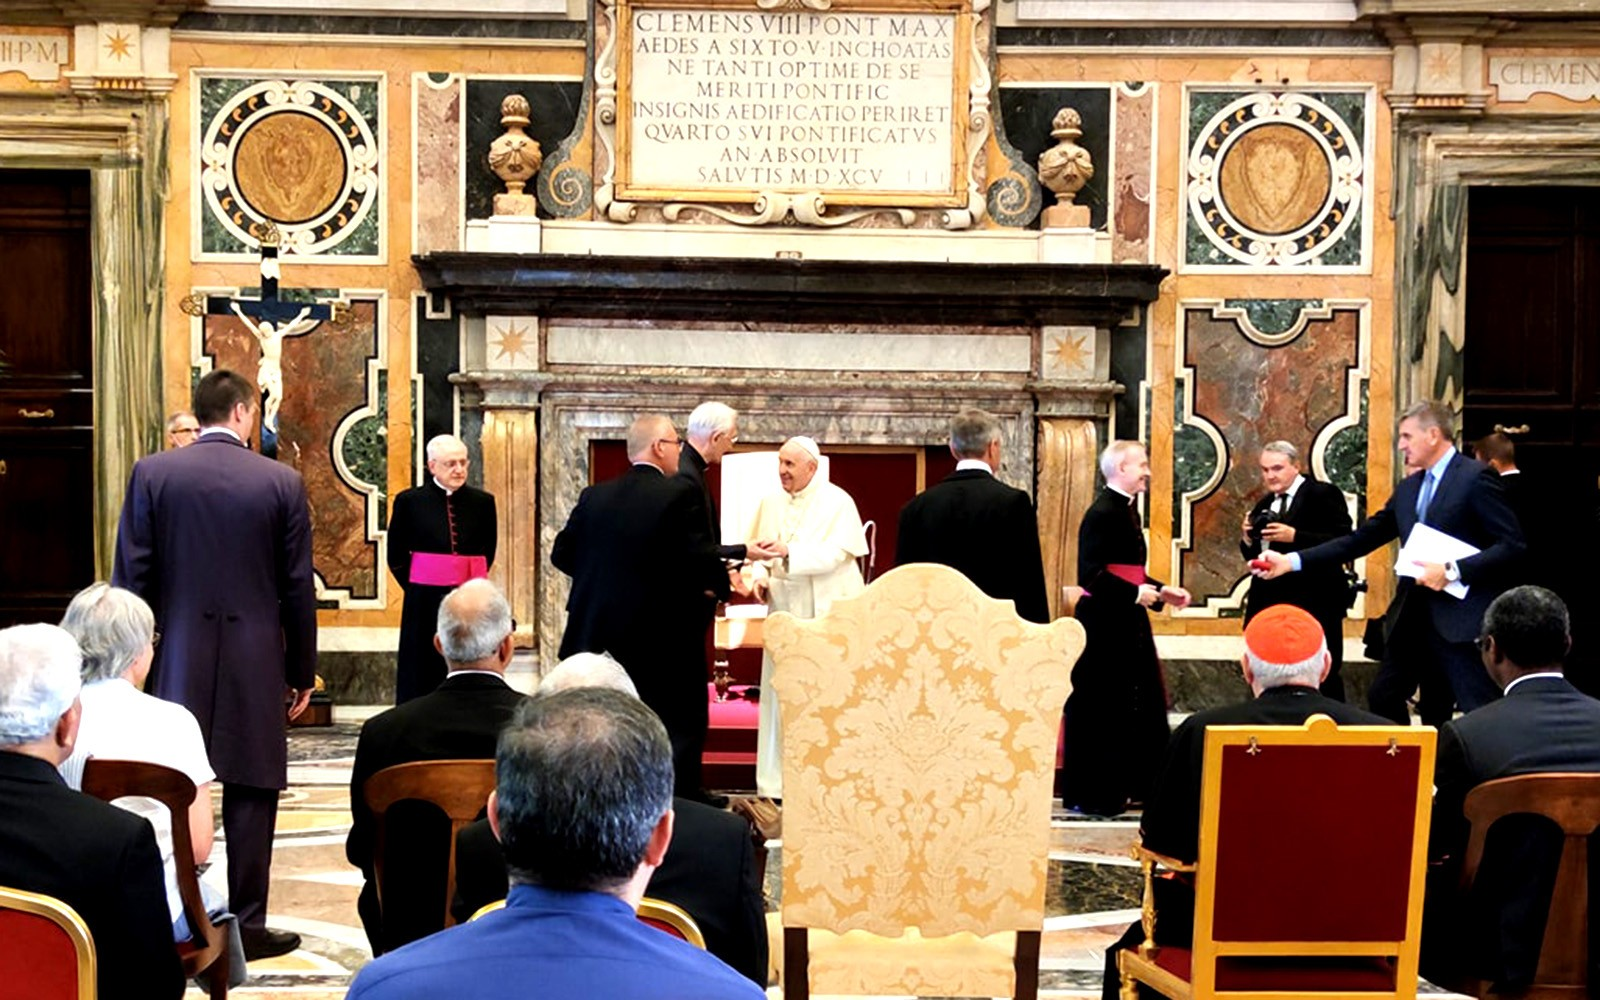 Pope Francis tells Claretian missionaries to 'fight for the basic rights of the people'